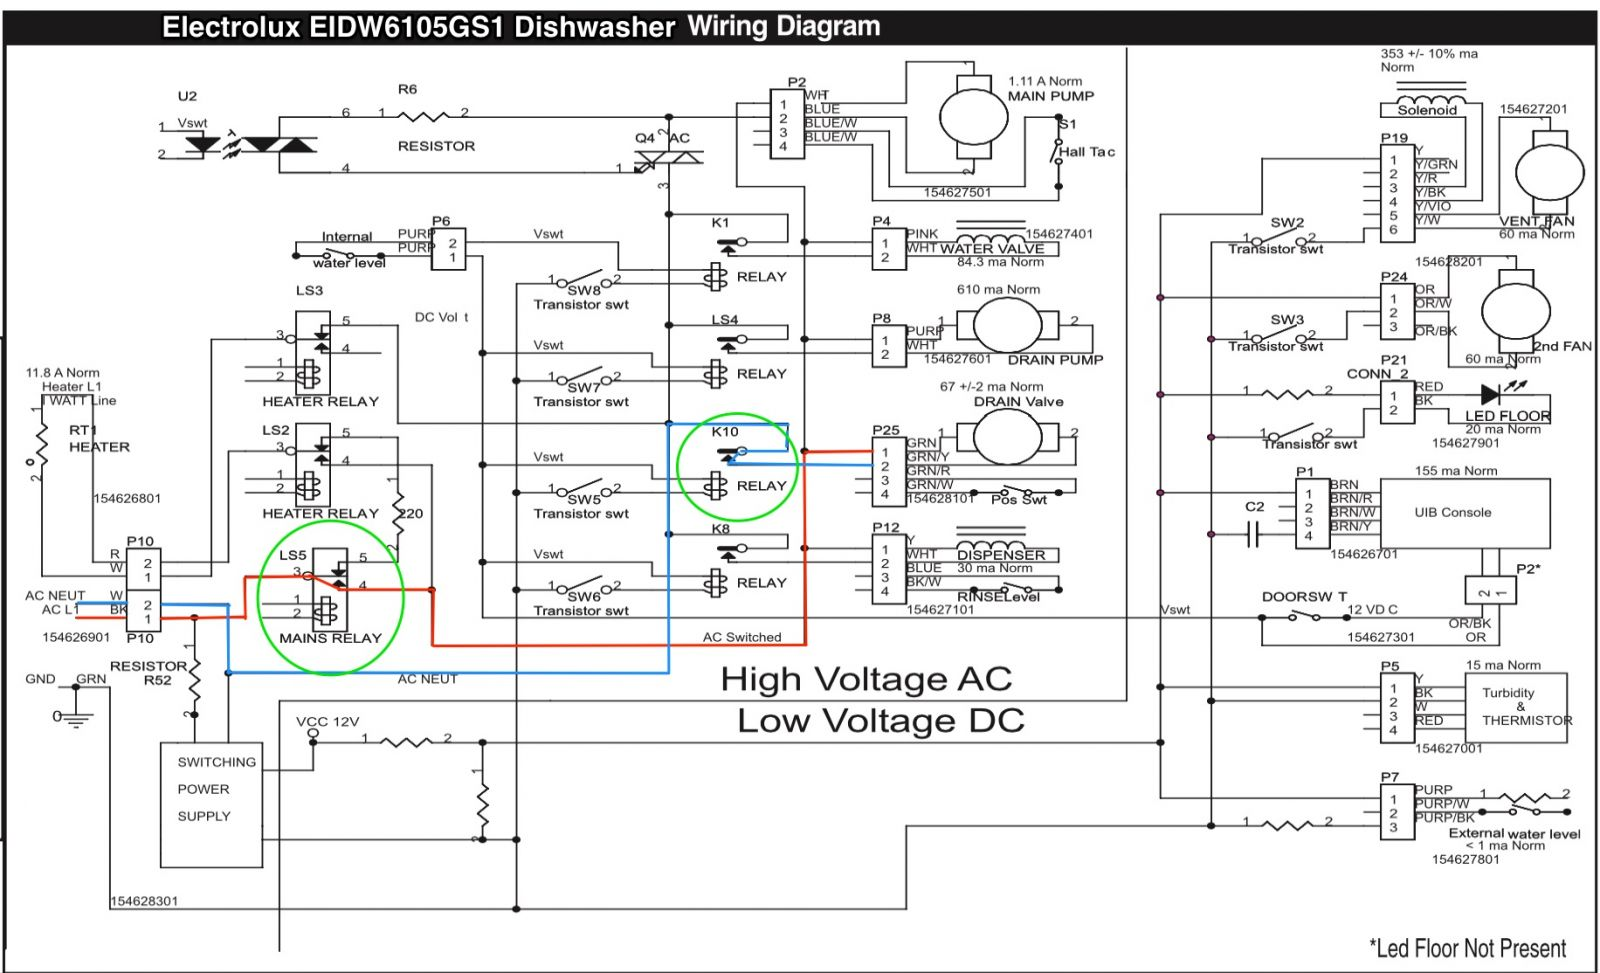 gallery_4_7_21756 electrolux eidw6105gs1 dishwasher wiring diagram the lightbox wiring diagram how to at gsmportal.co